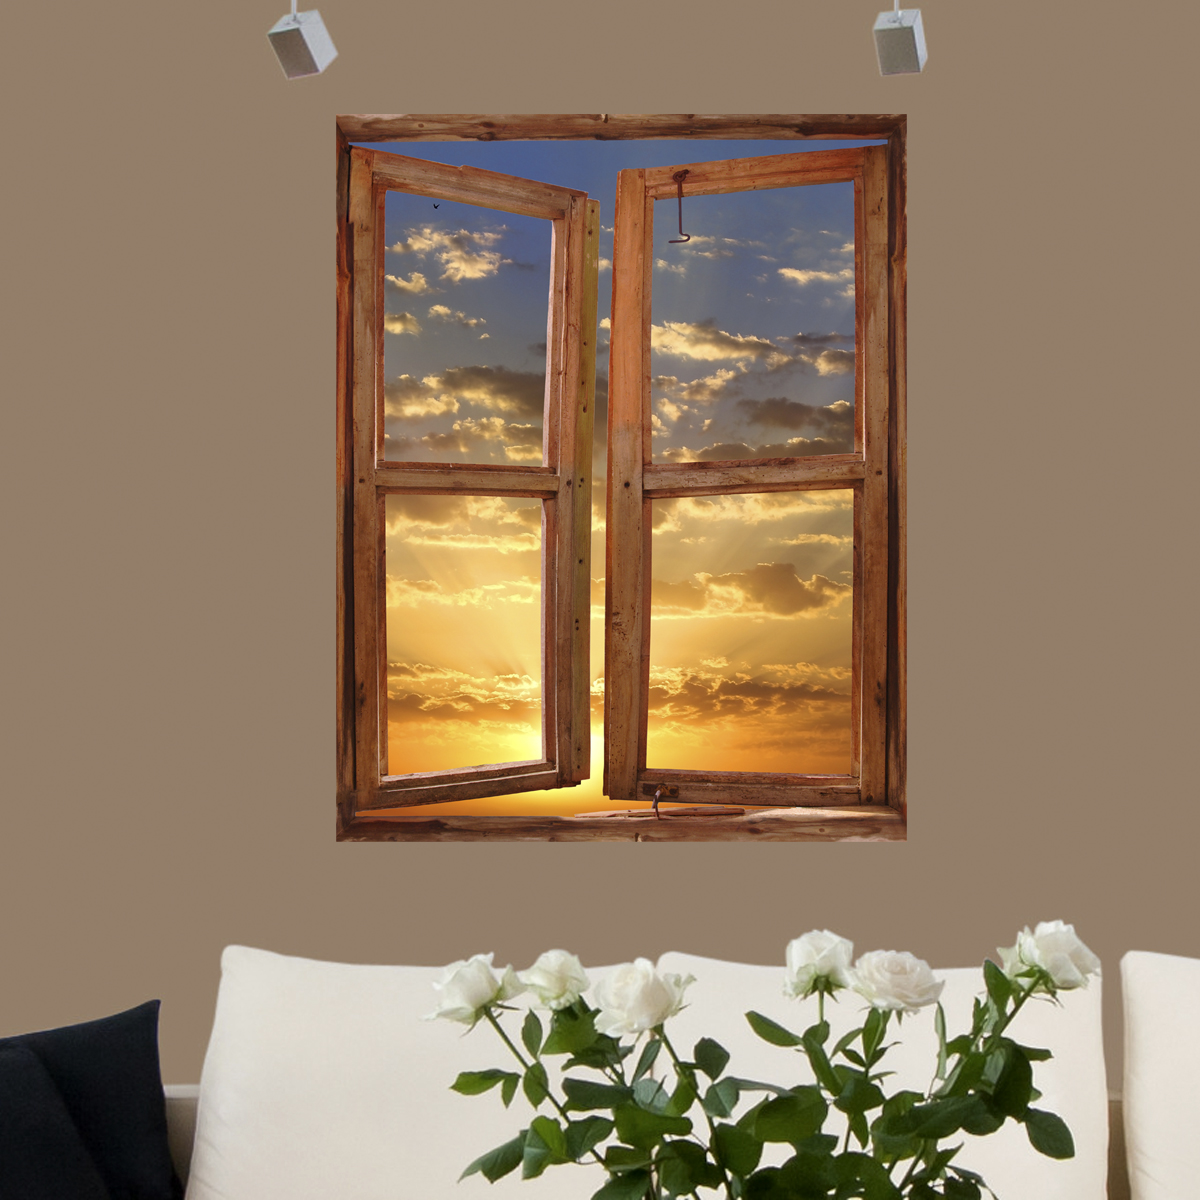 sticker muraux trompe l 39 oeil sticker mural coucher de soleil dans un cadre vertical ambiance. Black Bedroom Furniture Sets. Home Design Ideas